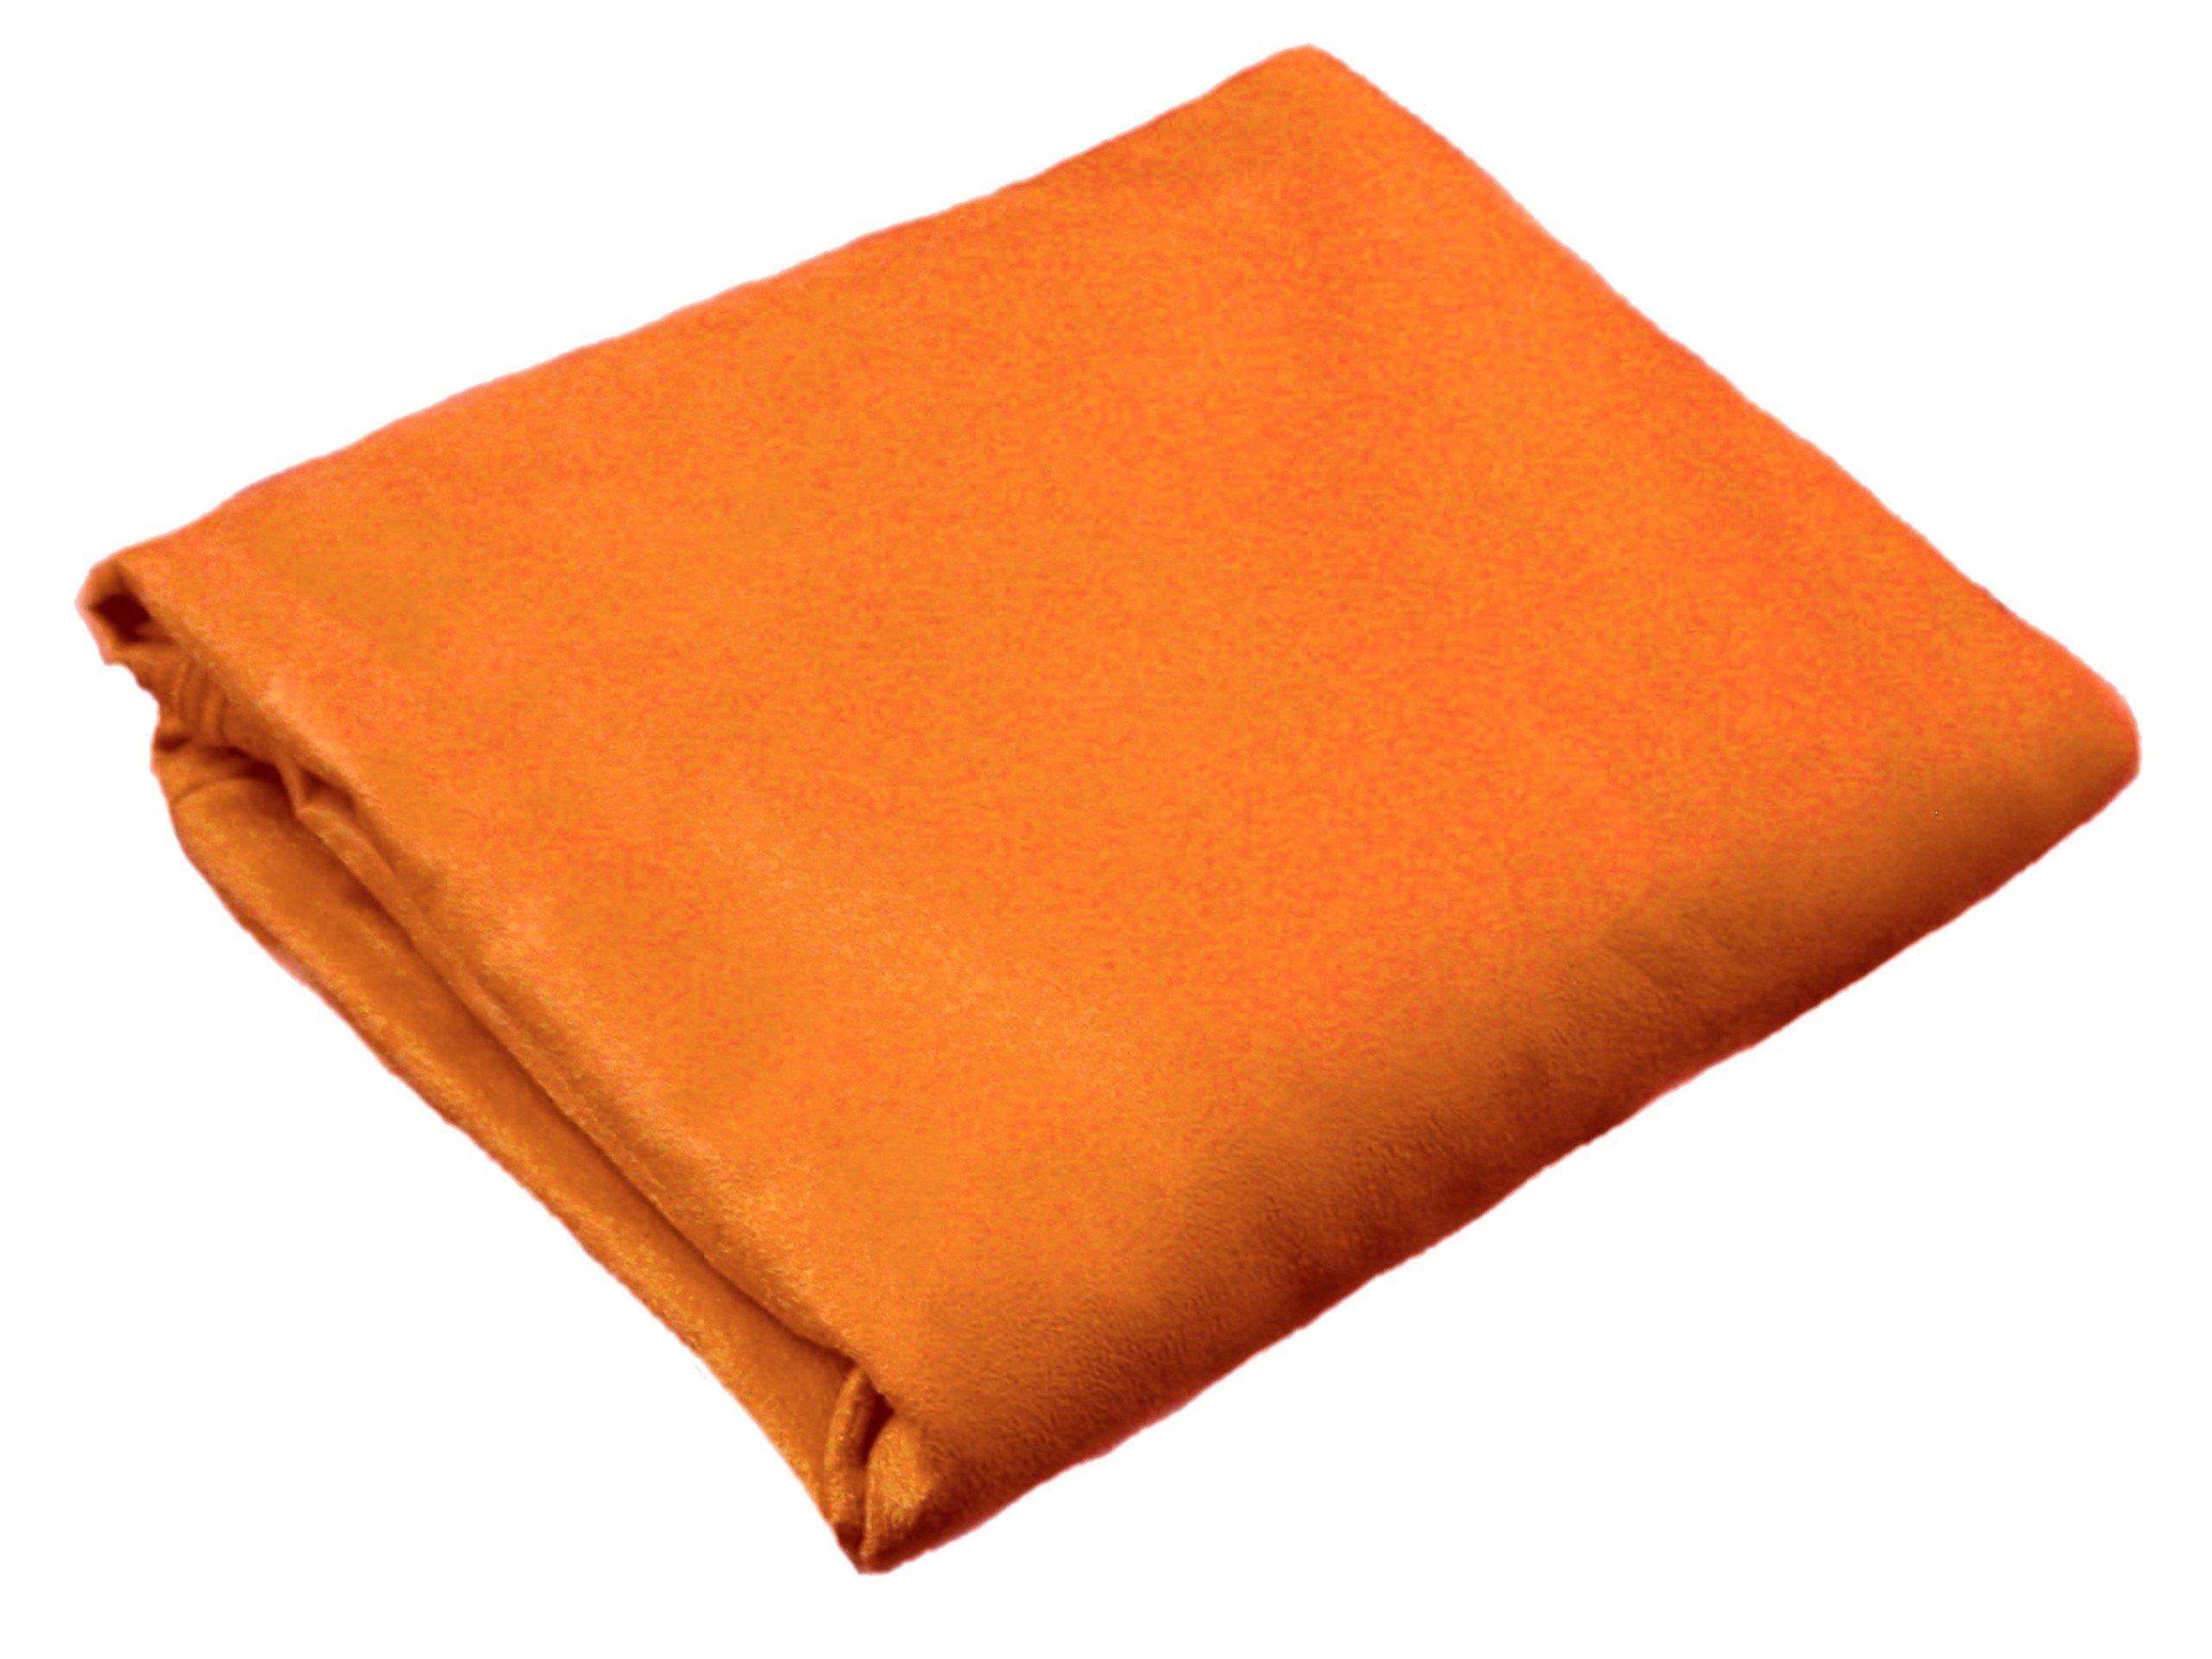 Replacement Cover for 5 Foot Cozy Sack Bean Bag Chair 48 Inch Diameter Durable Double Stitch Construction Machine Wash